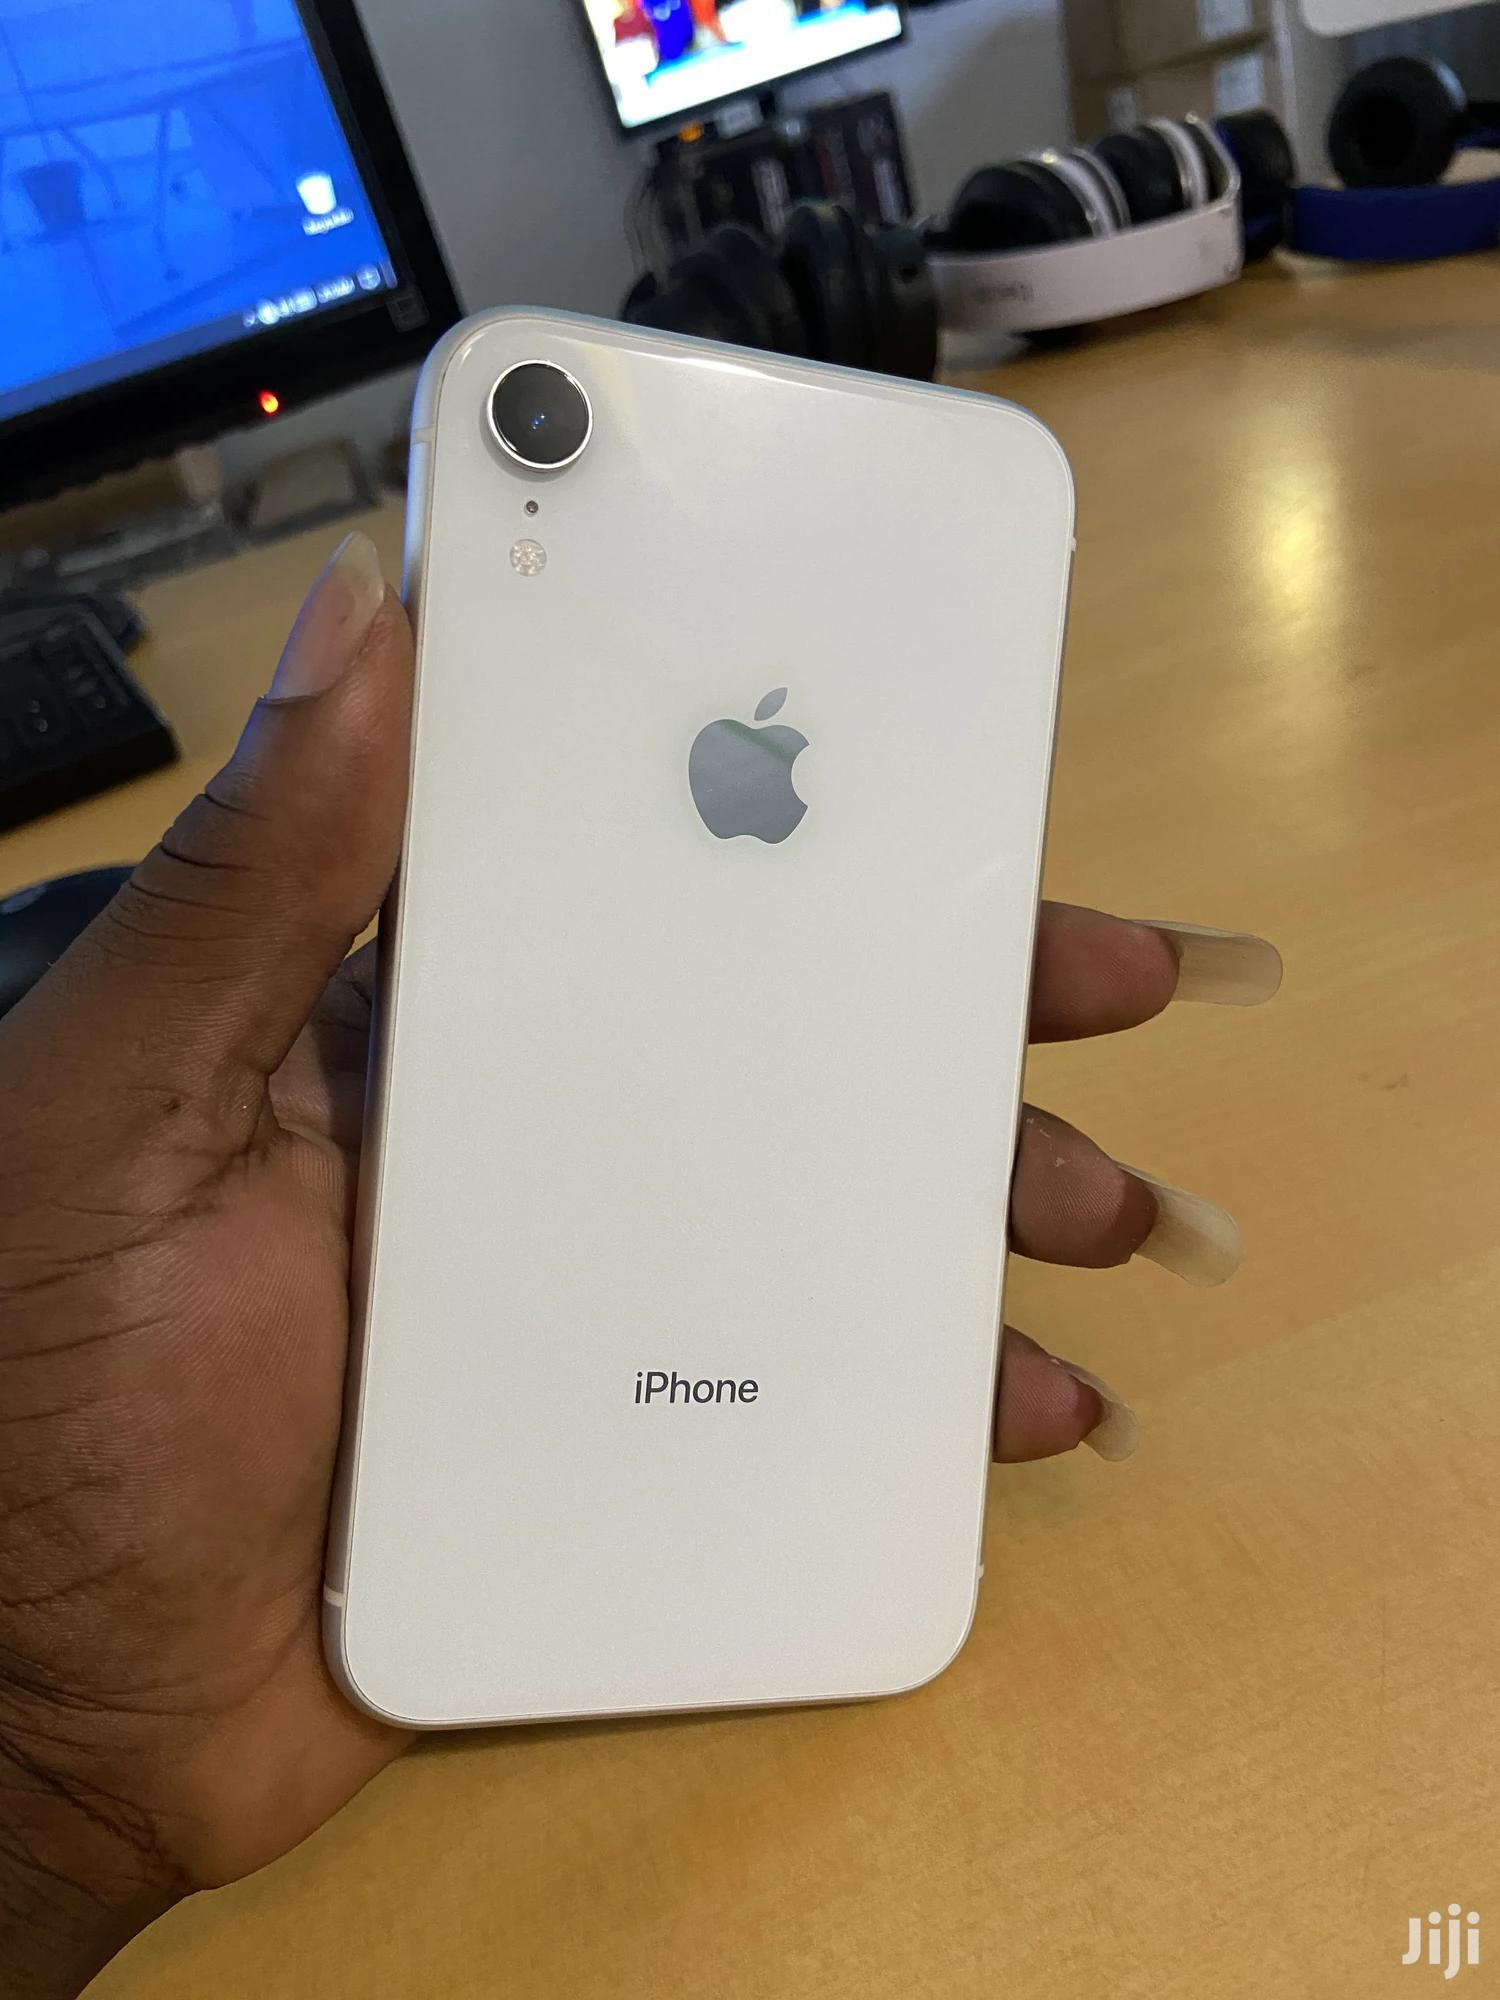 Apple iPhone XR 64 GB White | Mobile Phones for sale in Ga East Municipal, Greater Accra, Ghana